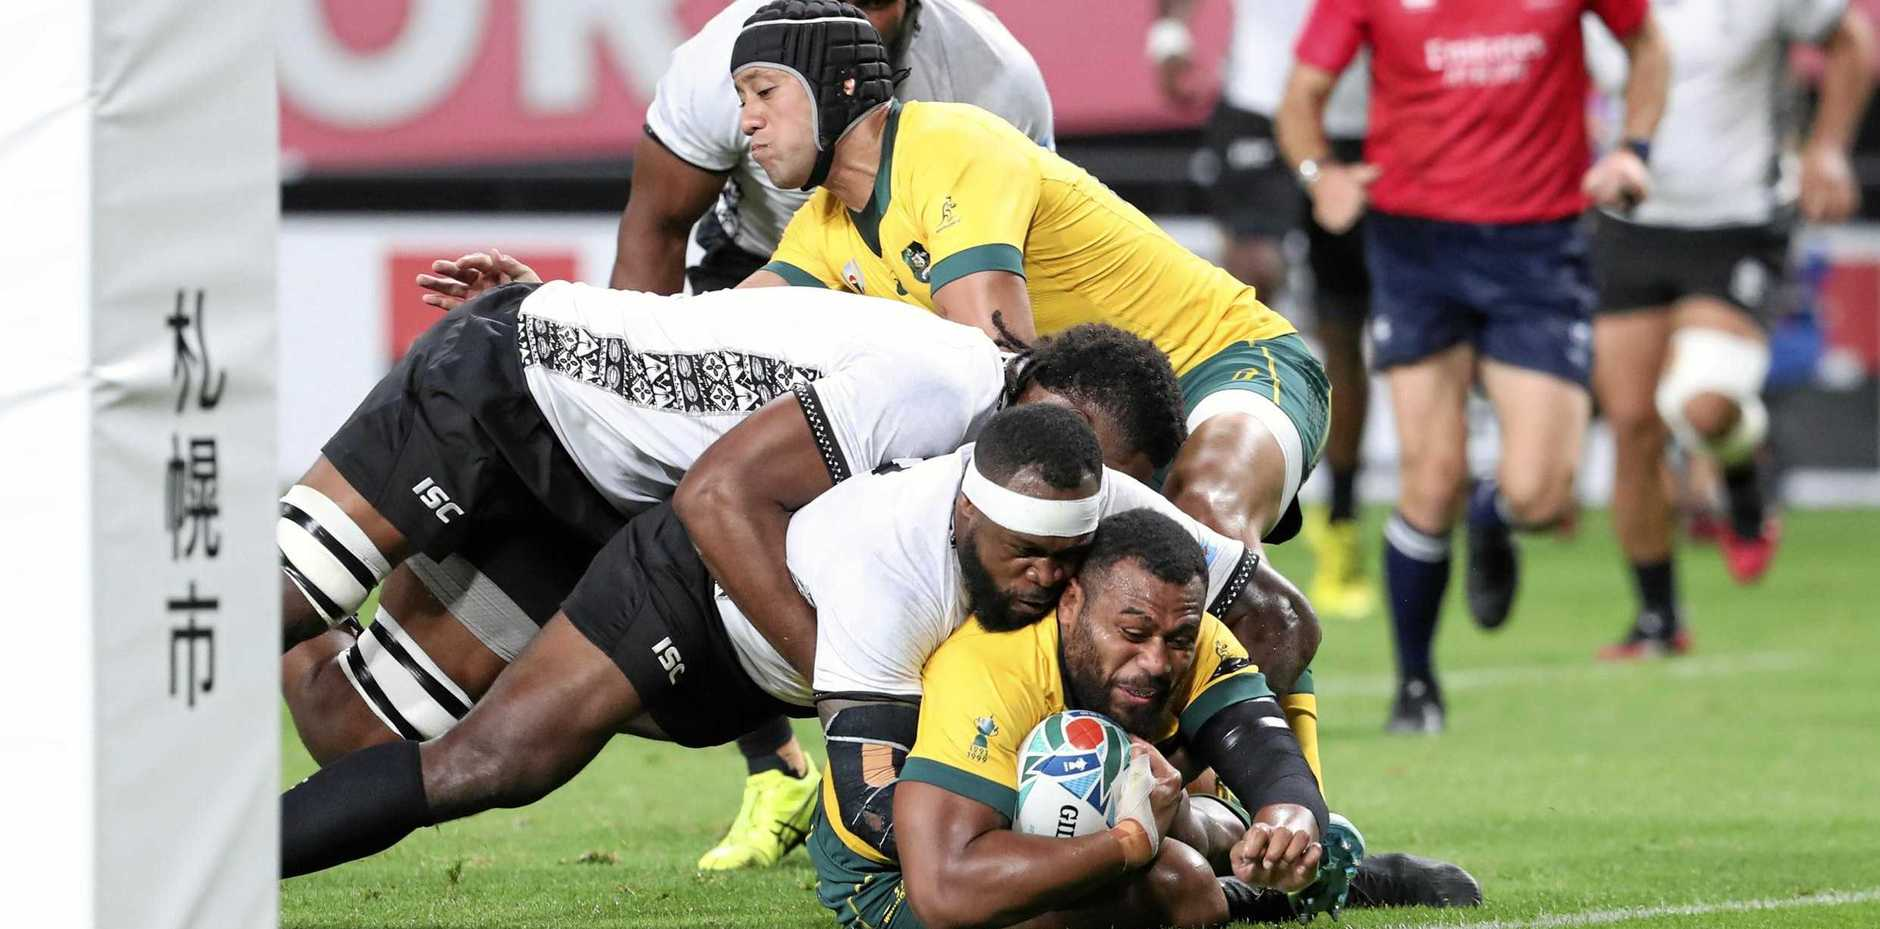 Fiji's Levani Botia struggles to stop Australia's Samu Kerevi from scoring in the first half of their Rugby World Cup opener. Picture: Masaharu Sugimoto/AP